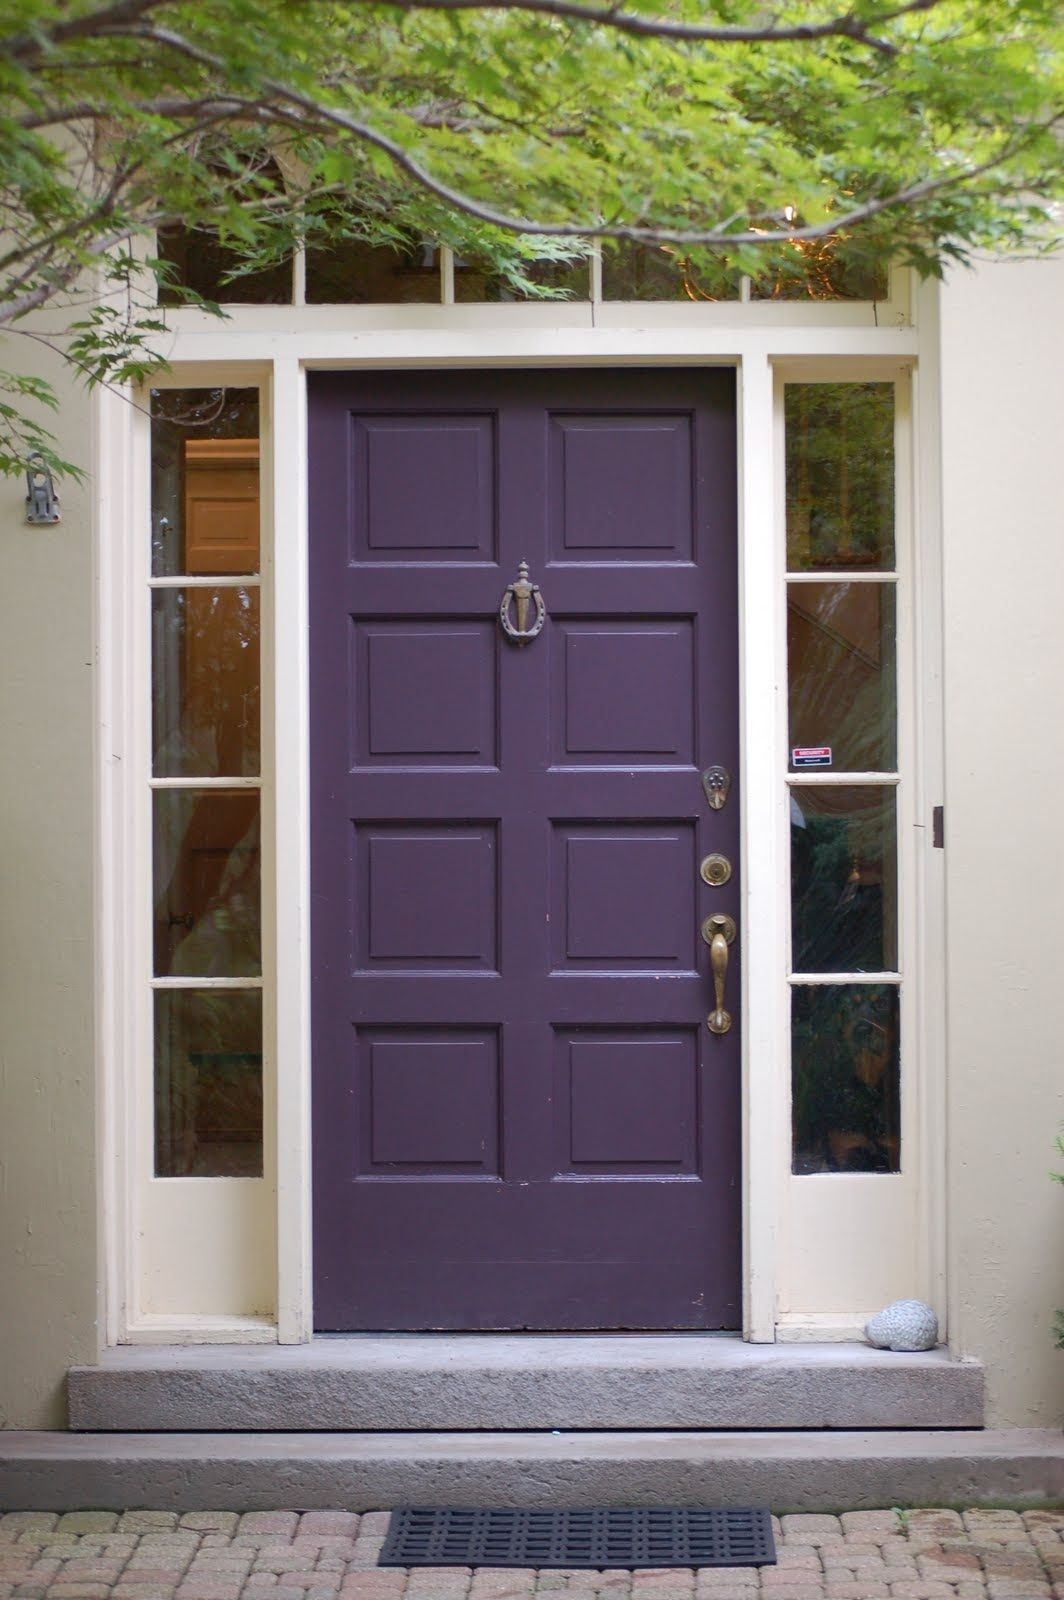 Benjamin Moore Regal Select Exterior Soft Gloss Dark Purple 2073 10